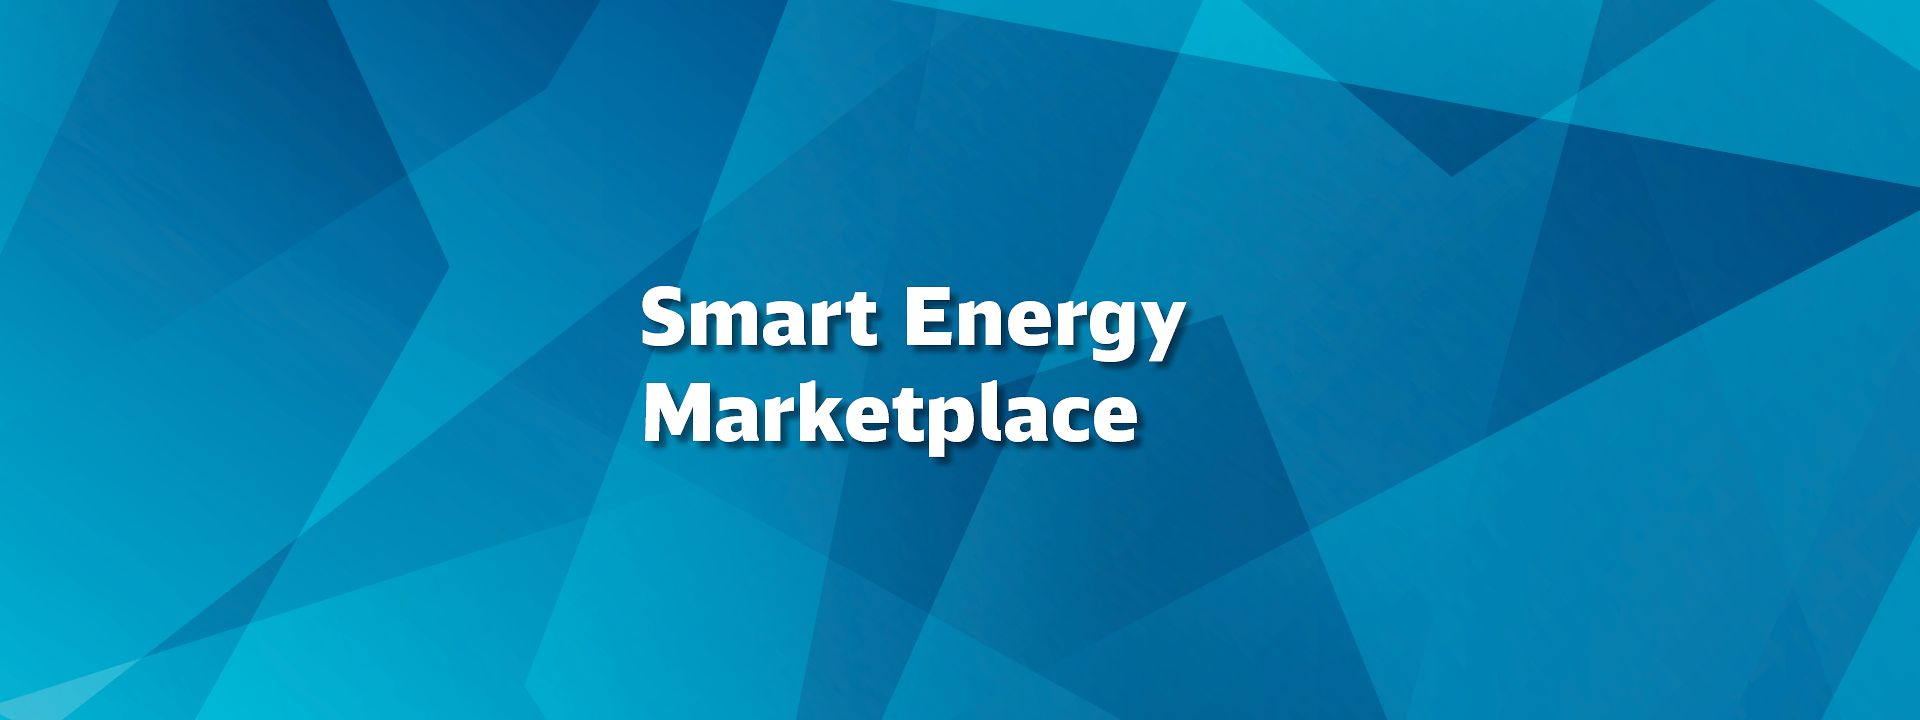 DB Systel_Smart_Energy_Marketplace